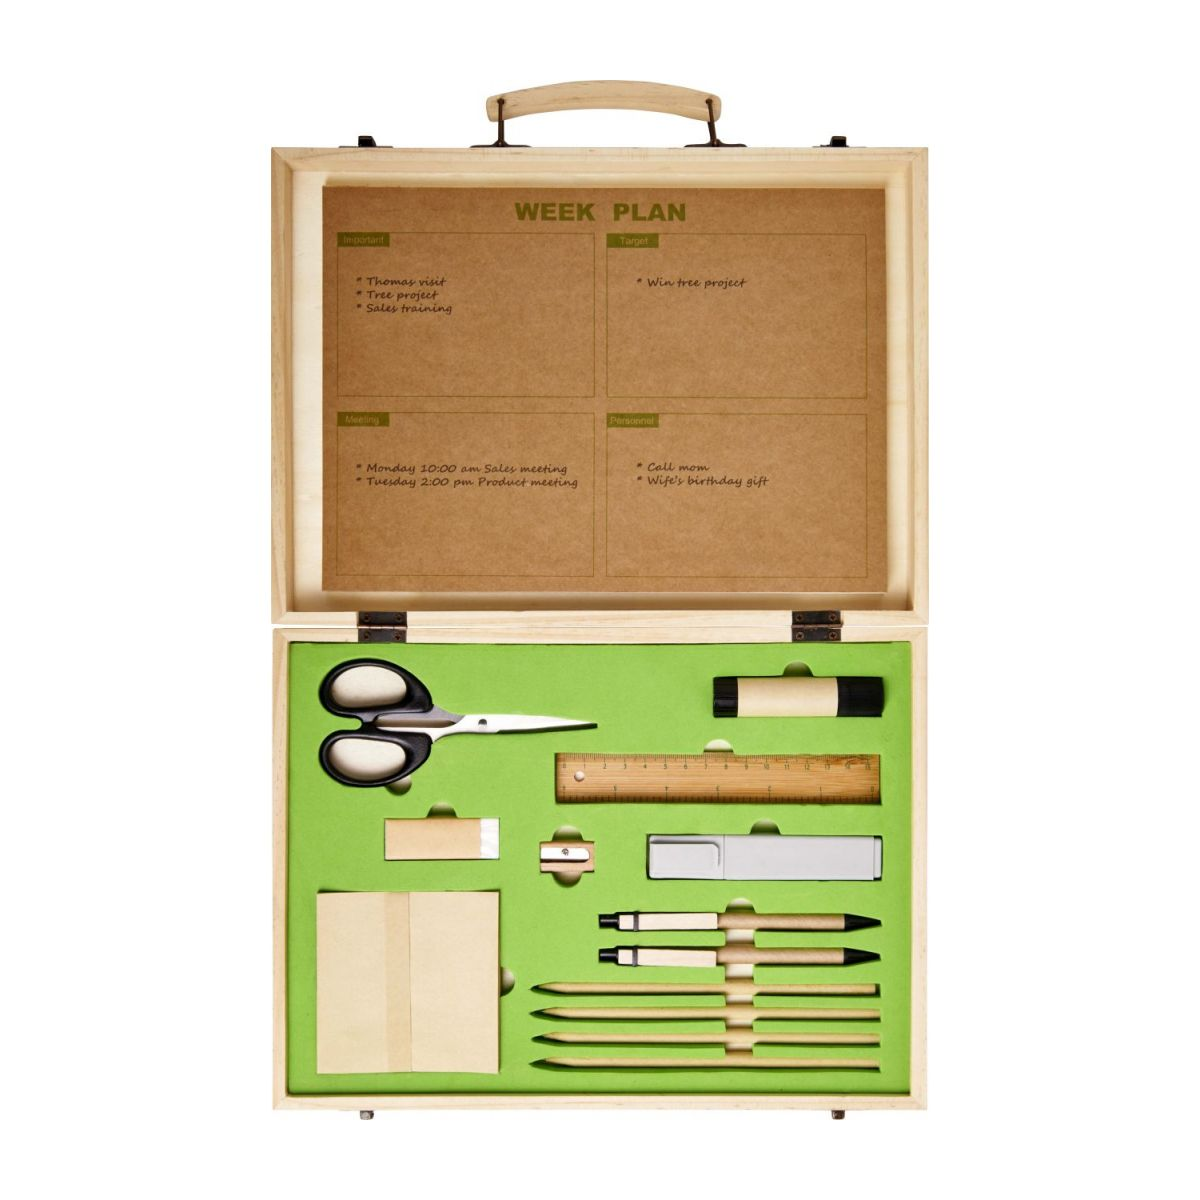 Stationery box (14 pieces) n°4